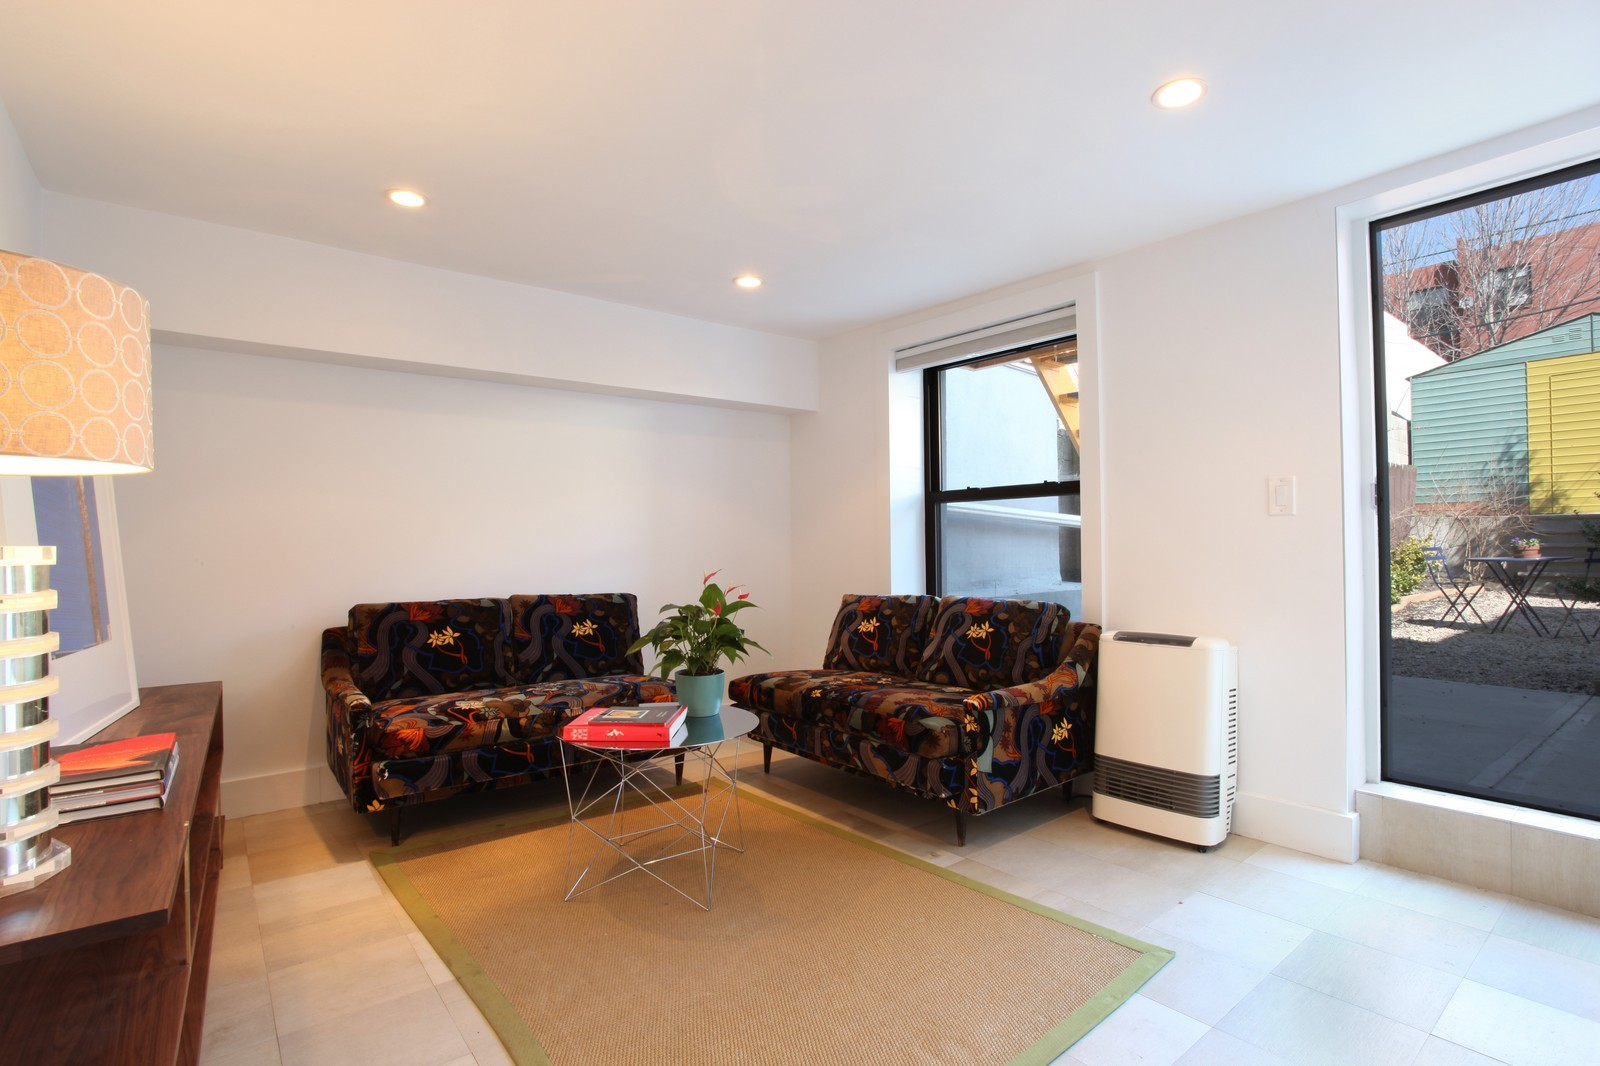 Real Estate Photography - 116 Pioneer Street, Brooklyn, NY, 11231 - Lower Level